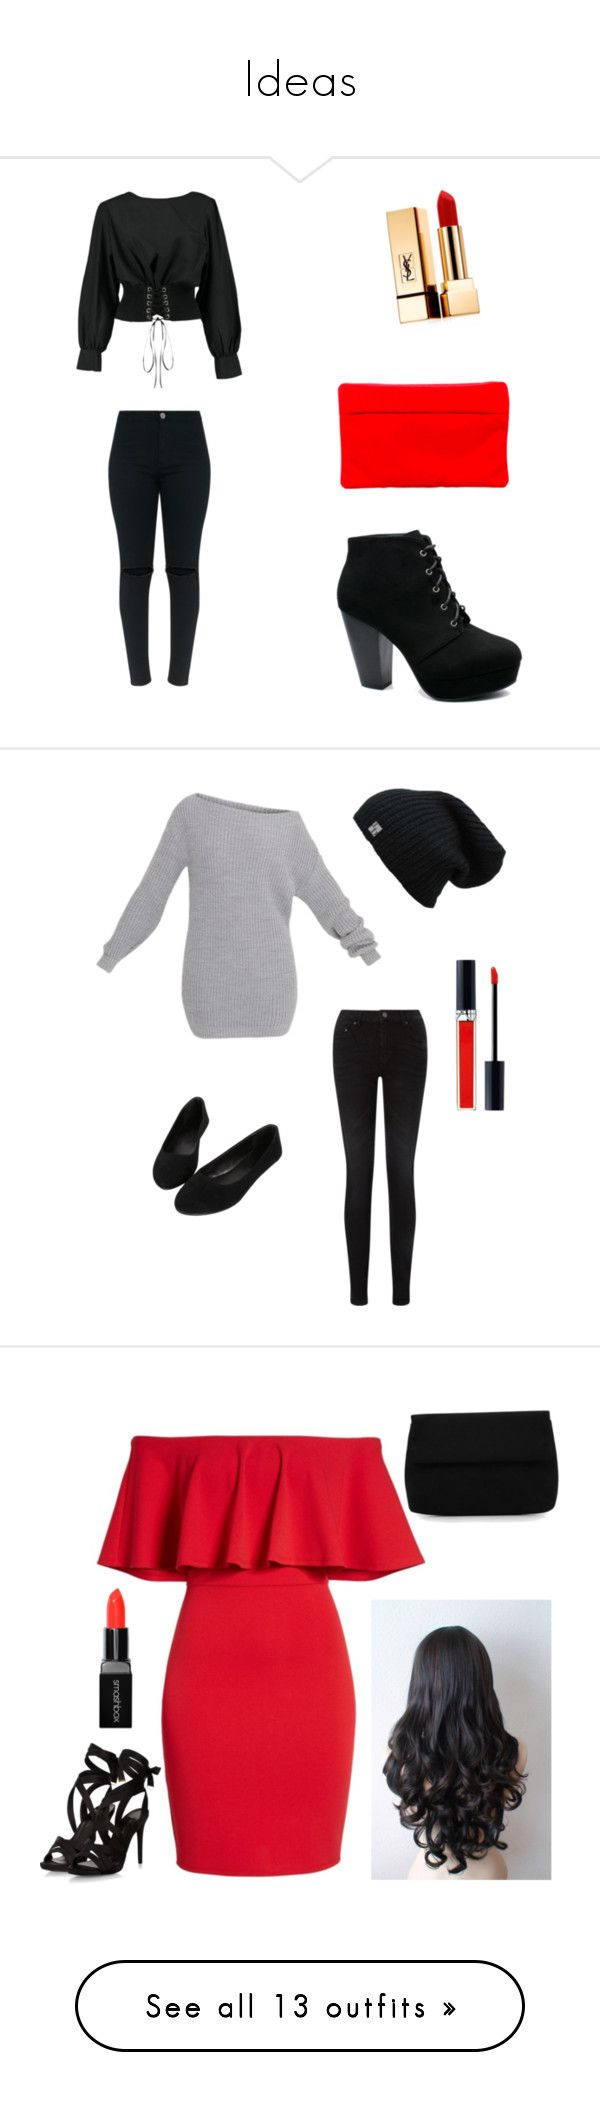 Ideas by jennifer-anello on Polyvore featuring polyvore, fashion, style, Boohoo, Yves Saint Laurent, Corto Moltedo, clothing, Pieces, John Lewis, Soprano, Smashbox, Marissa Webb, Topshop, Butterfly Twists, Ann Taylor, WithChic, Christian Dior, Studio Time, Puma, adidas, Bling Jewelry, Jessica Simpson, River Island, New York & Company, Charter Club, Corral, Peter Grimm, Zimmermann, Hot Diamonds, country, Sans Souci, Miss Selfridge, Steve Madden, Jessica McClintock, Keds, Calvin Klein Jeans…